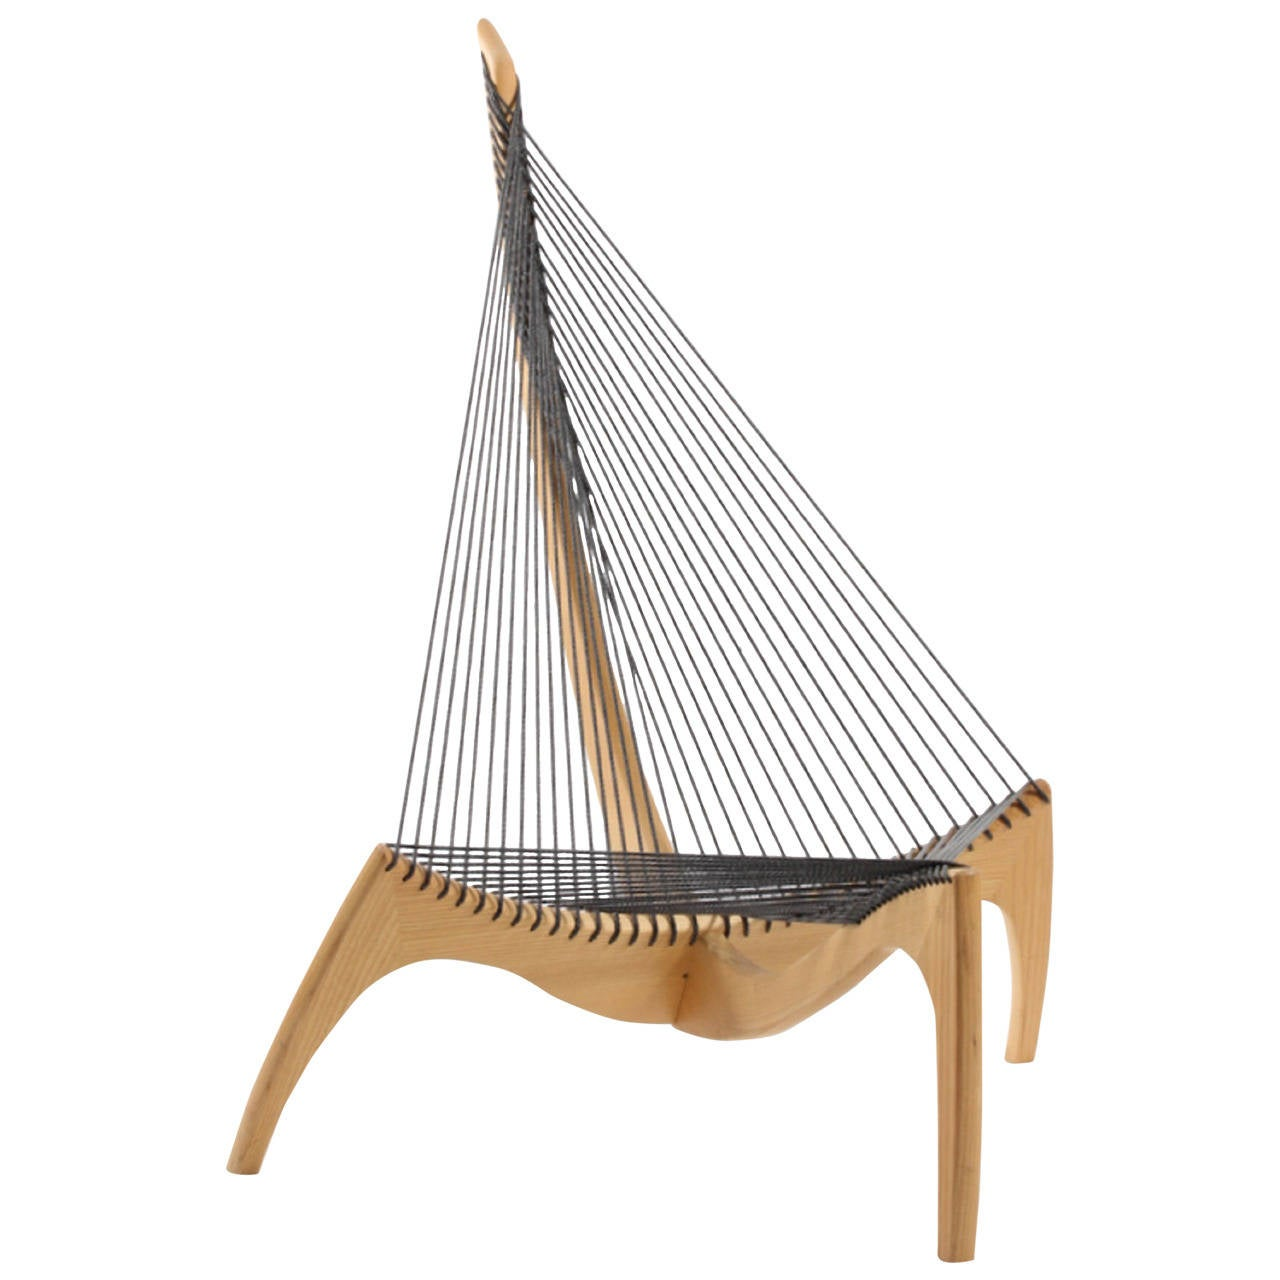 Harp Chair by Jorgen Hovelskov in Ashe 40th Anniversary Production